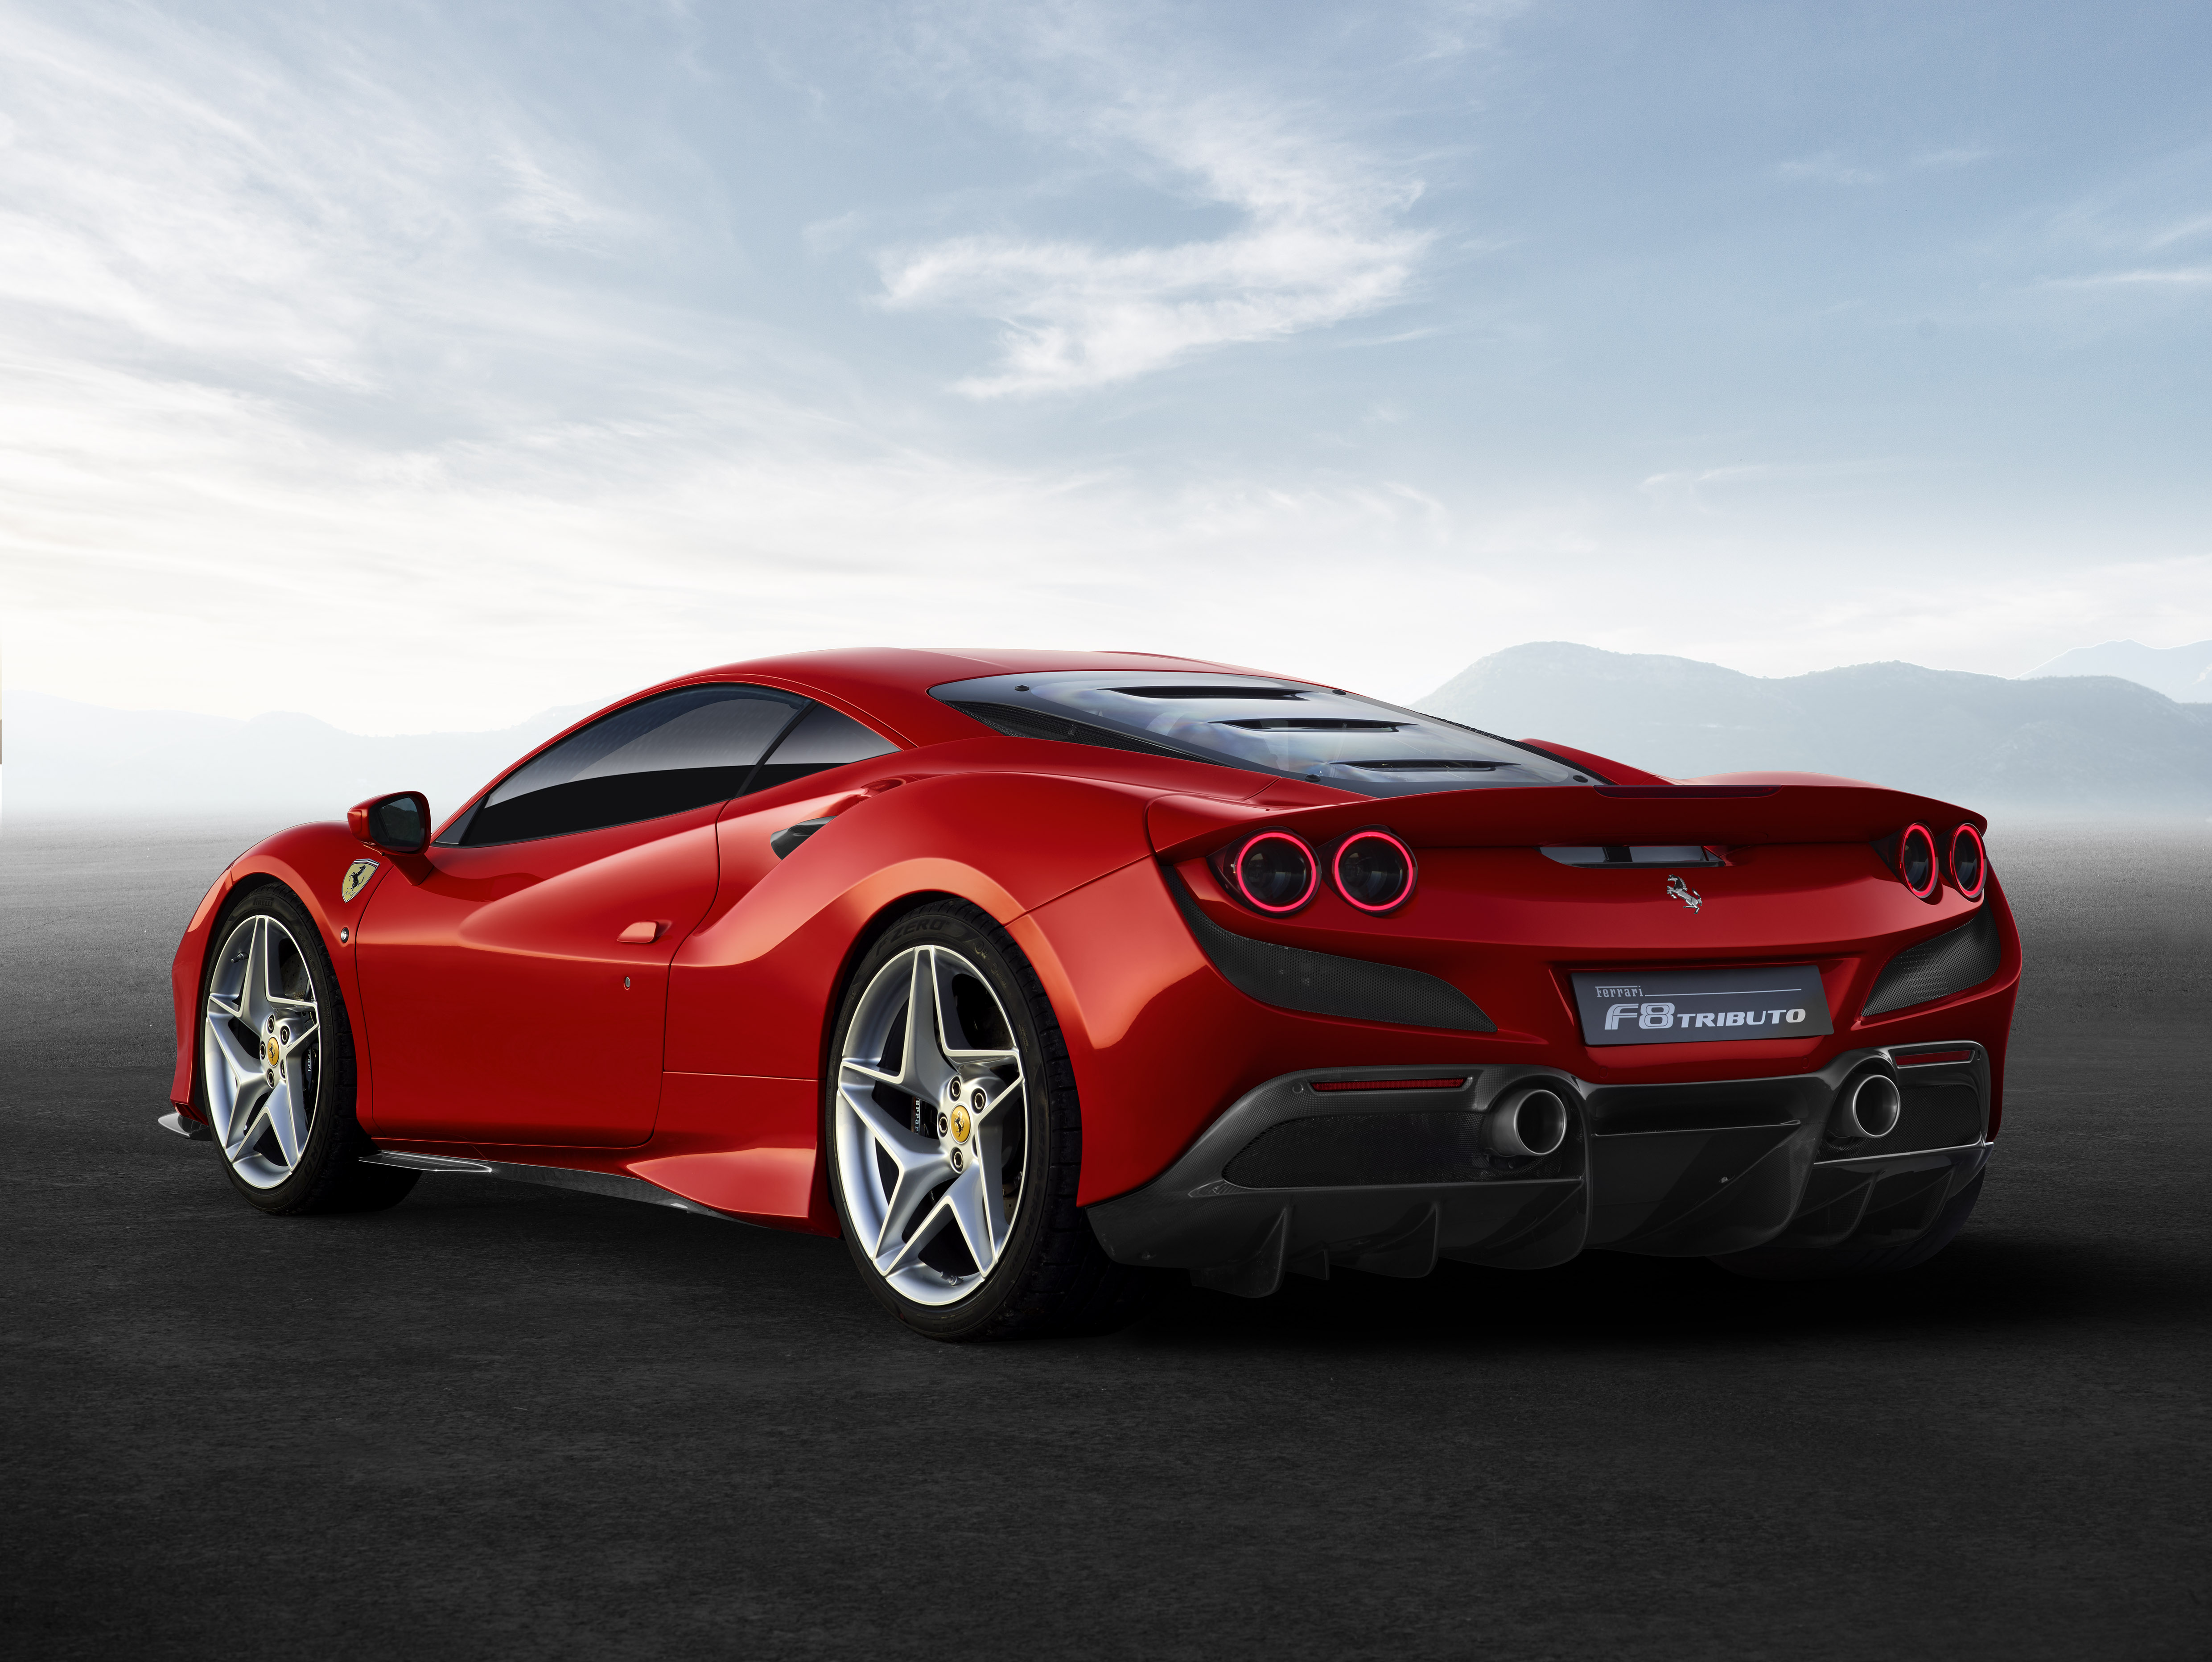 2020 Ferrari F8 Tributo: Maranello's New Mid-Engined